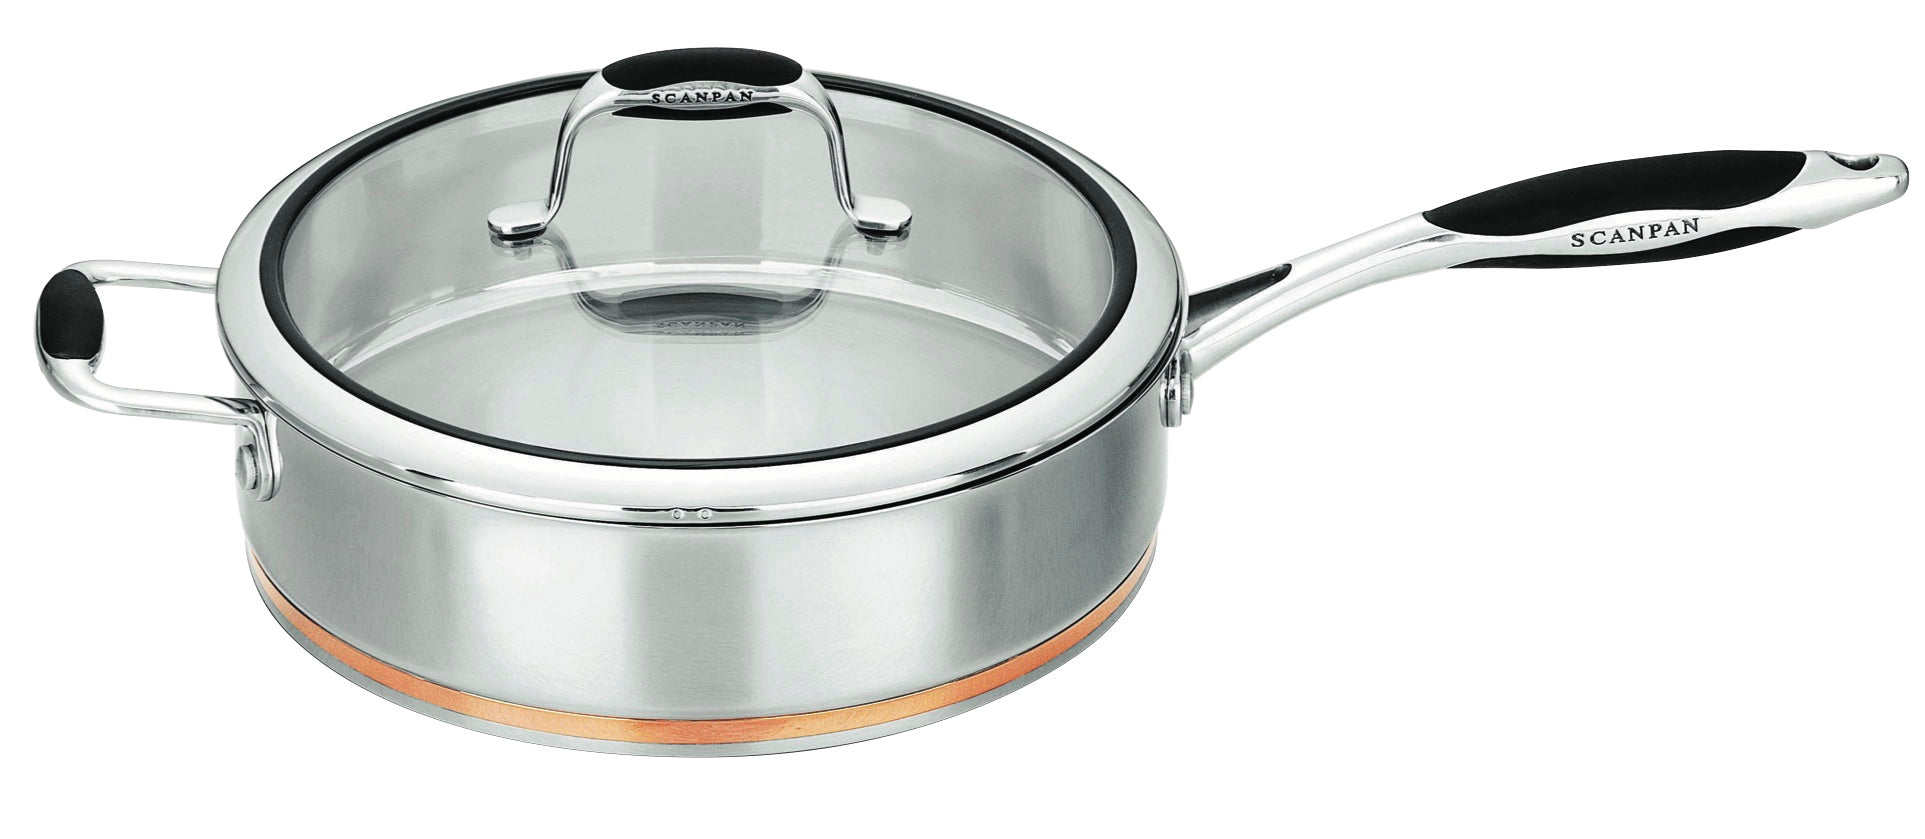 Scanpan Coppernox Saute Pan 28cm with Lid